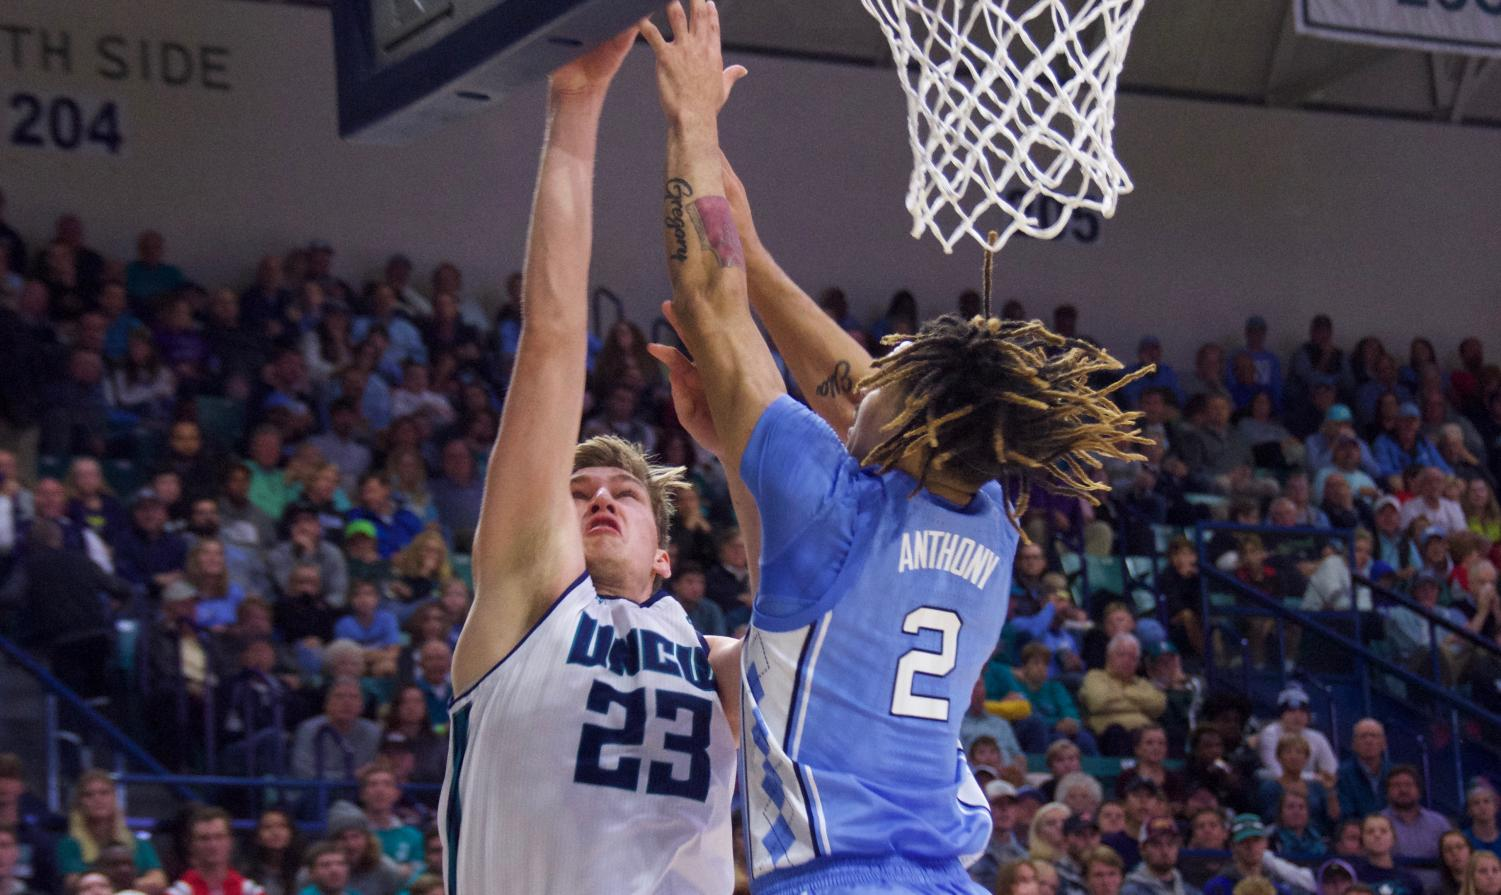 Marten Linssen (23) attempts to shoot over Cole Anthony (2) during UNCW's matchup with North Carolina on Nov. 8, 2019 at Trask Coliseum.